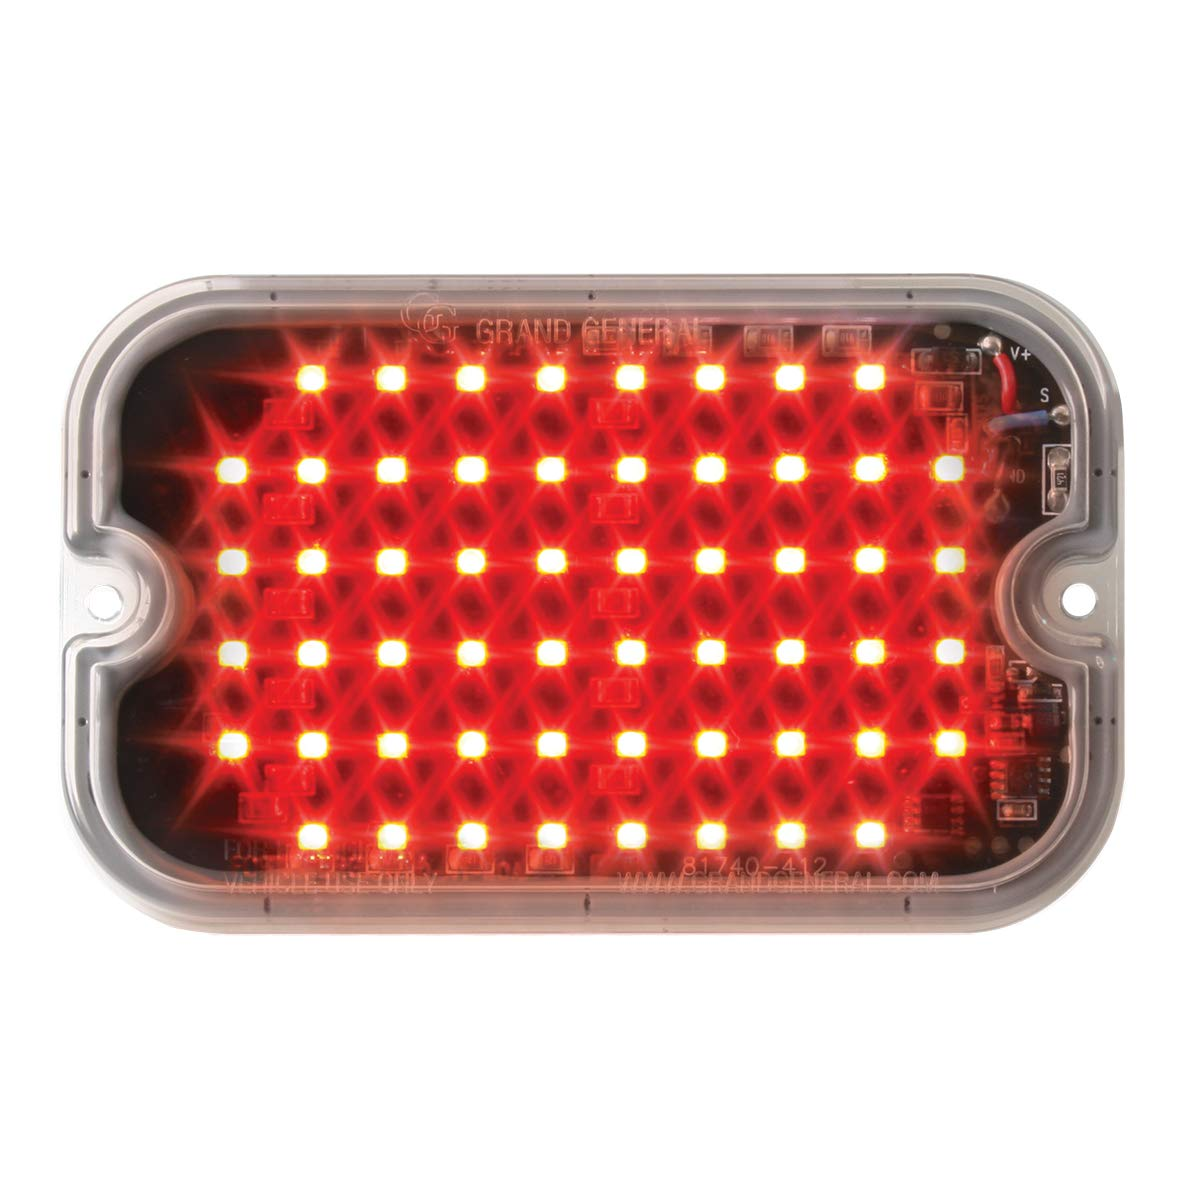 GG Grand General 81743 LED Light (Rectangle Red/Clear Multi-Strobe 56, 15 Flash Pattern)